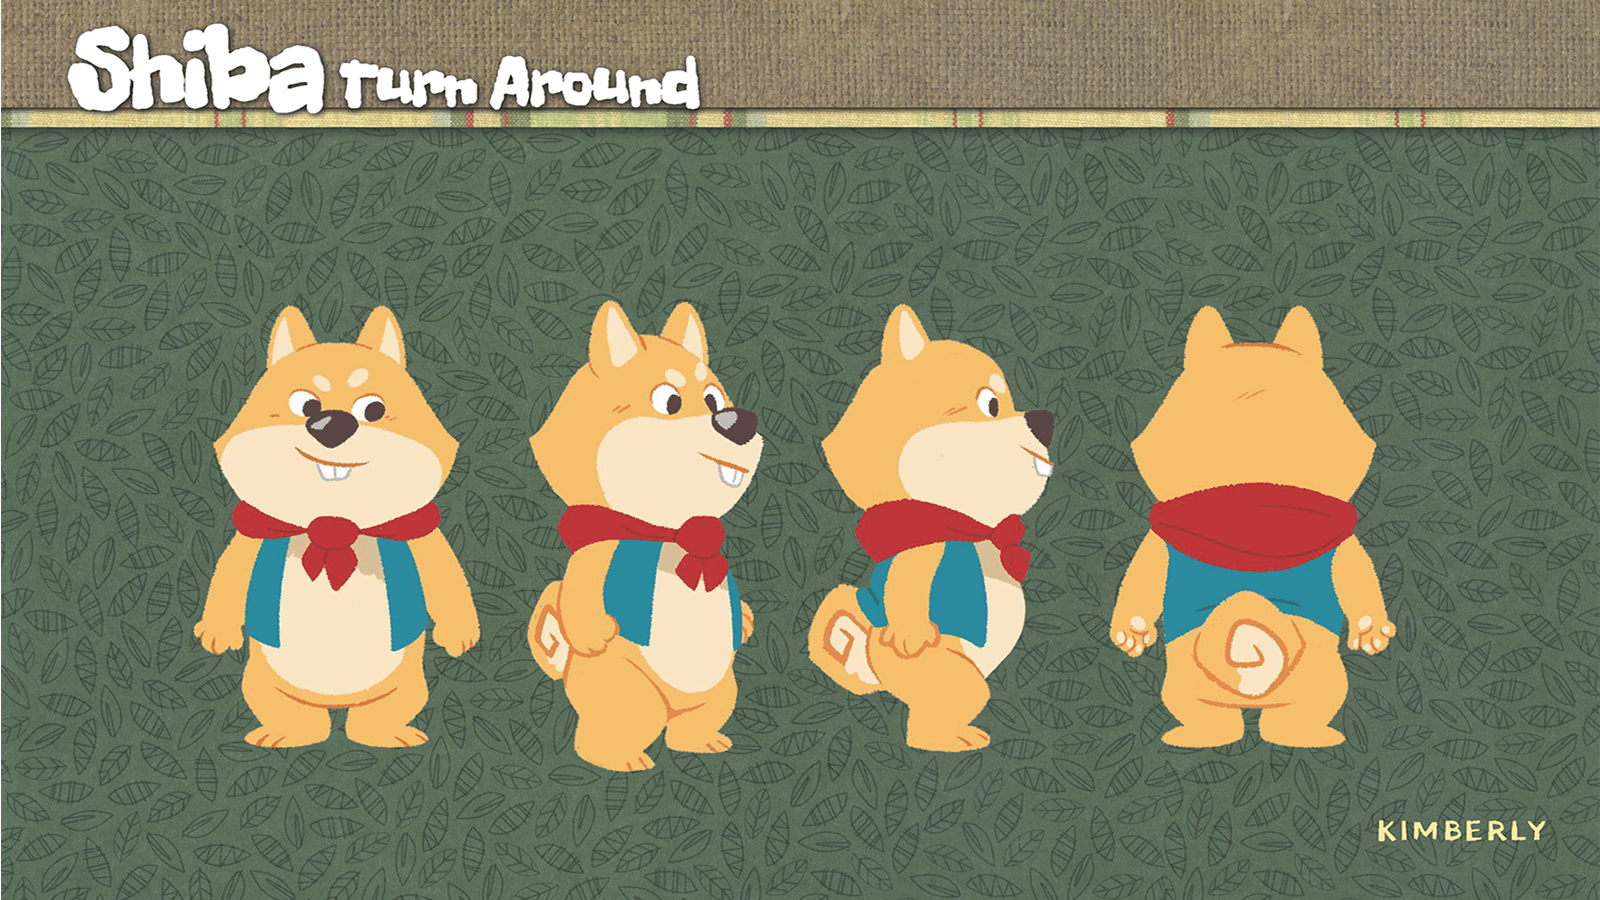 Turnaround of the character Shiba.